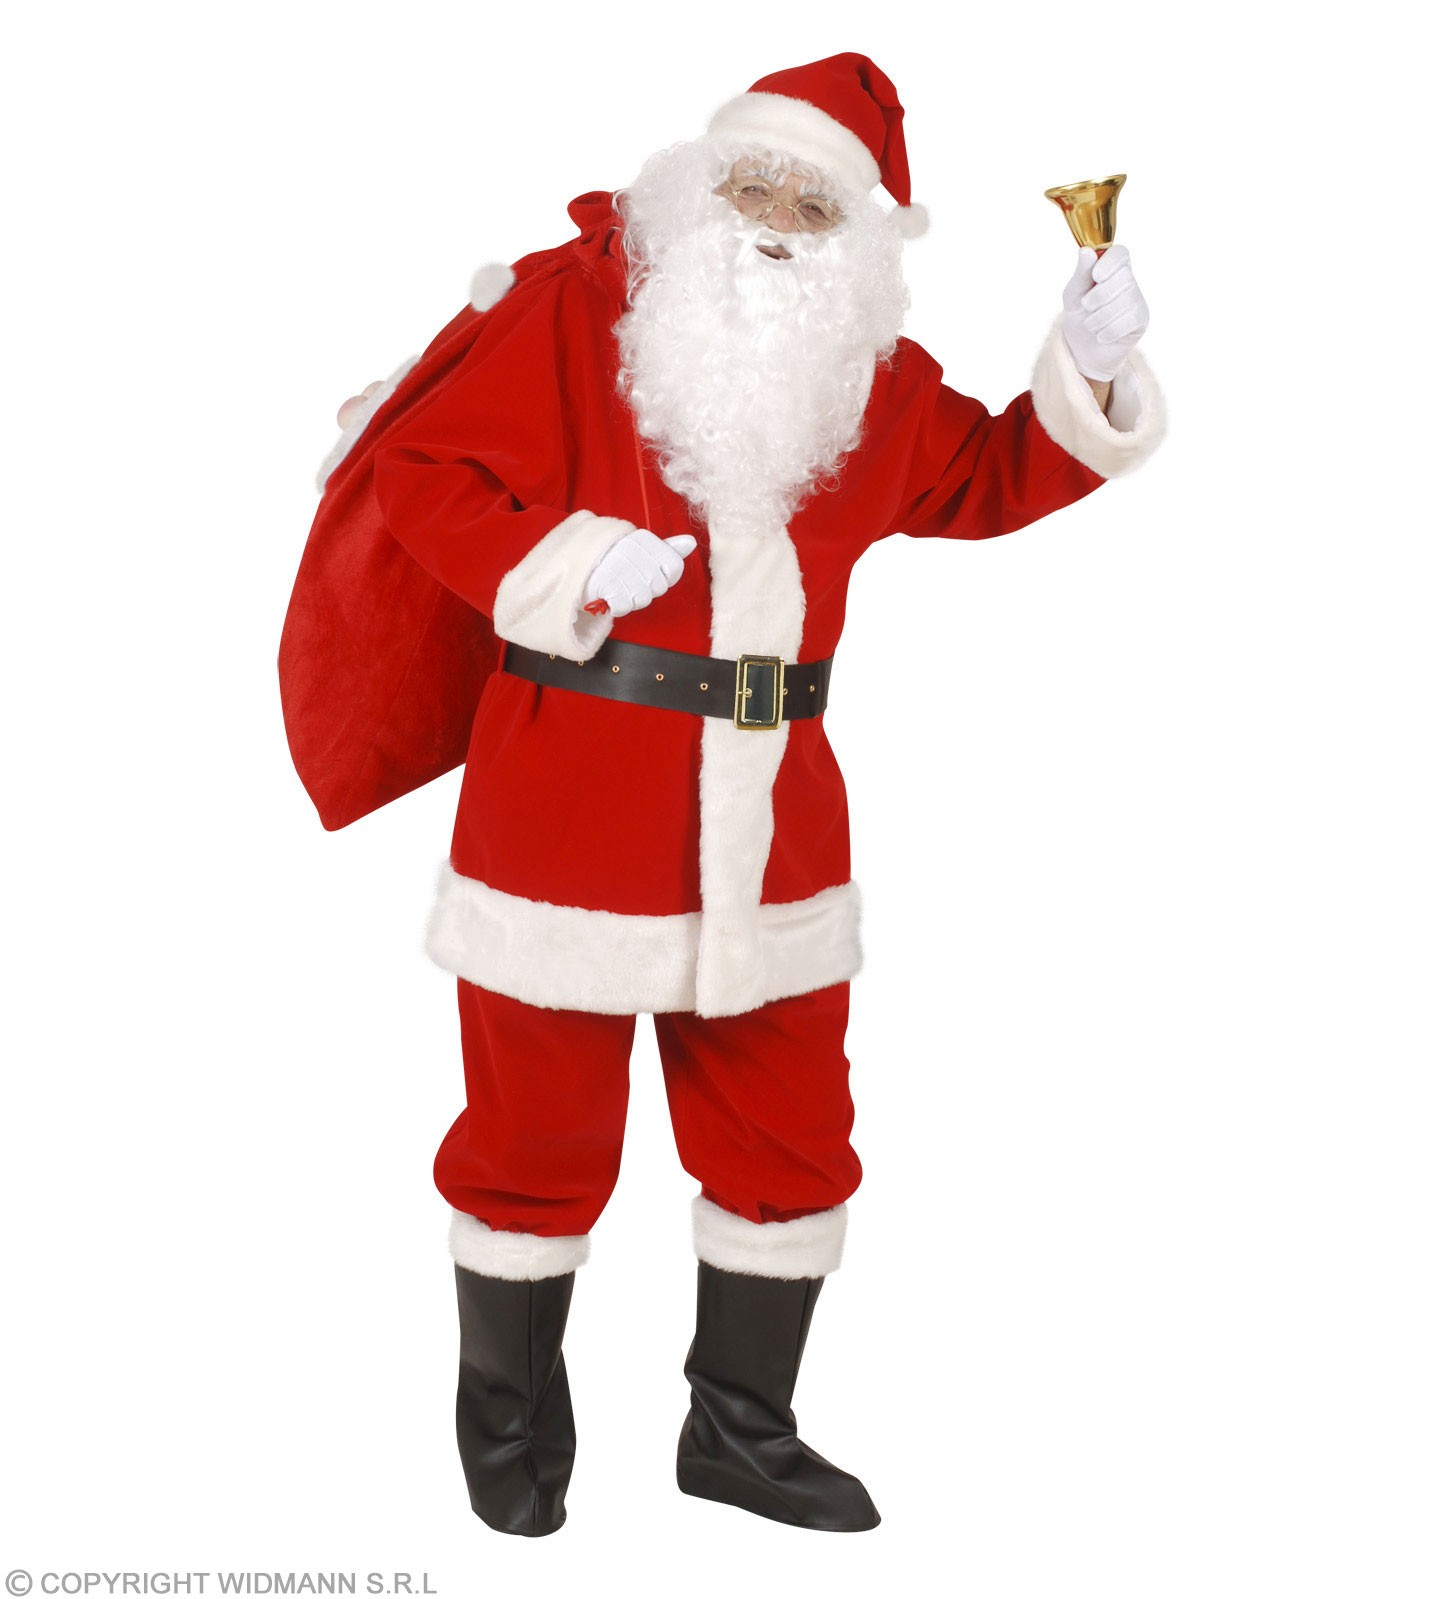 Xl Professional Santa Suit In Window Box Costume (Christmas)